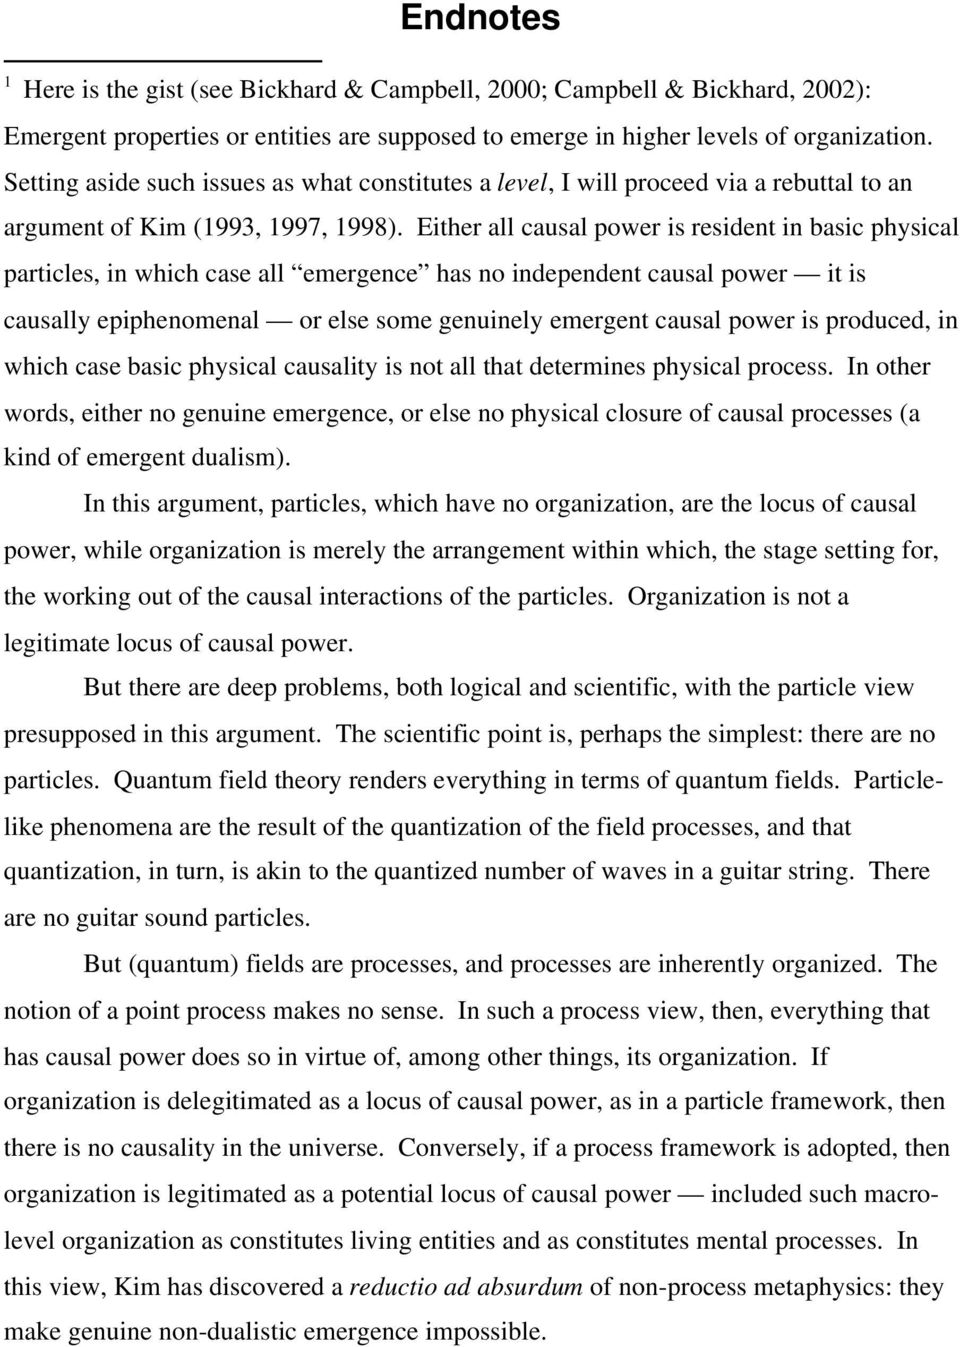 Either all causal power is resident in basic physical particles, in which case all emergence has no independent causal power it is causally epiphenomenal or else some genuinely emergent causal power